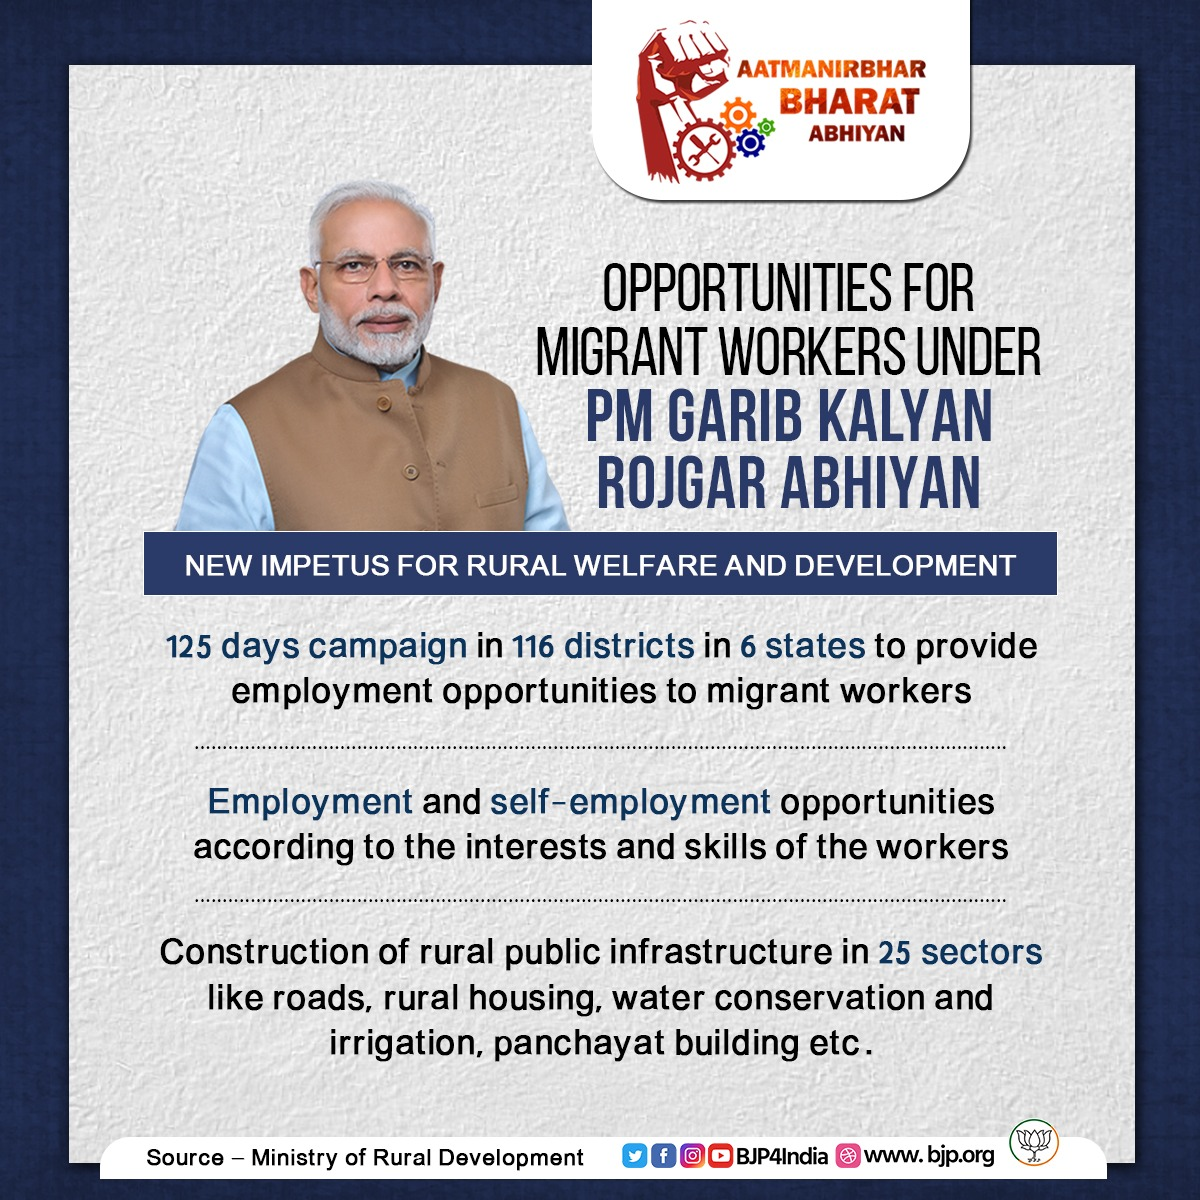 Modi government is providing work opportunities for returned migrant workers under PM Garib Kalyan Rojgar Abhiyan.  The initiative will run in mission mode in 116 districts in 6 states for 125 days and will provide an impetus to rural economy and infrastructure. https://t.co/RwdrqYczKn